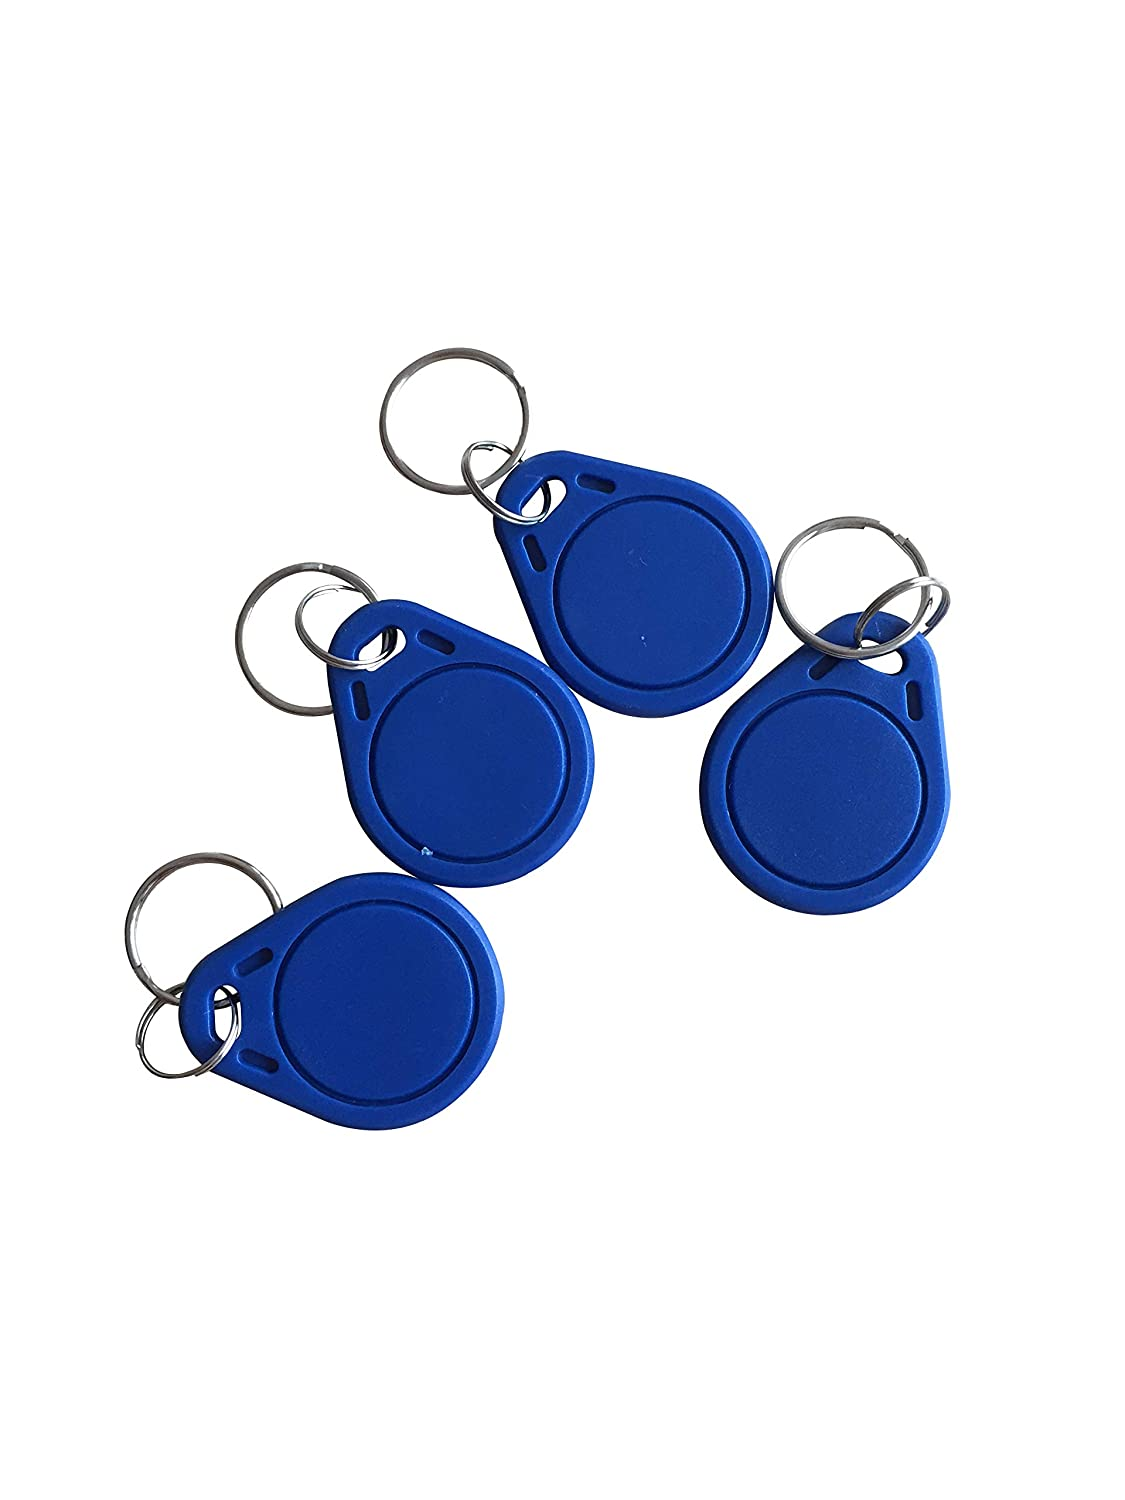 iCode SLI ISO 15693 13.56Mhz Key Fob Blue ABS (Pack of 10) YARONGTECH